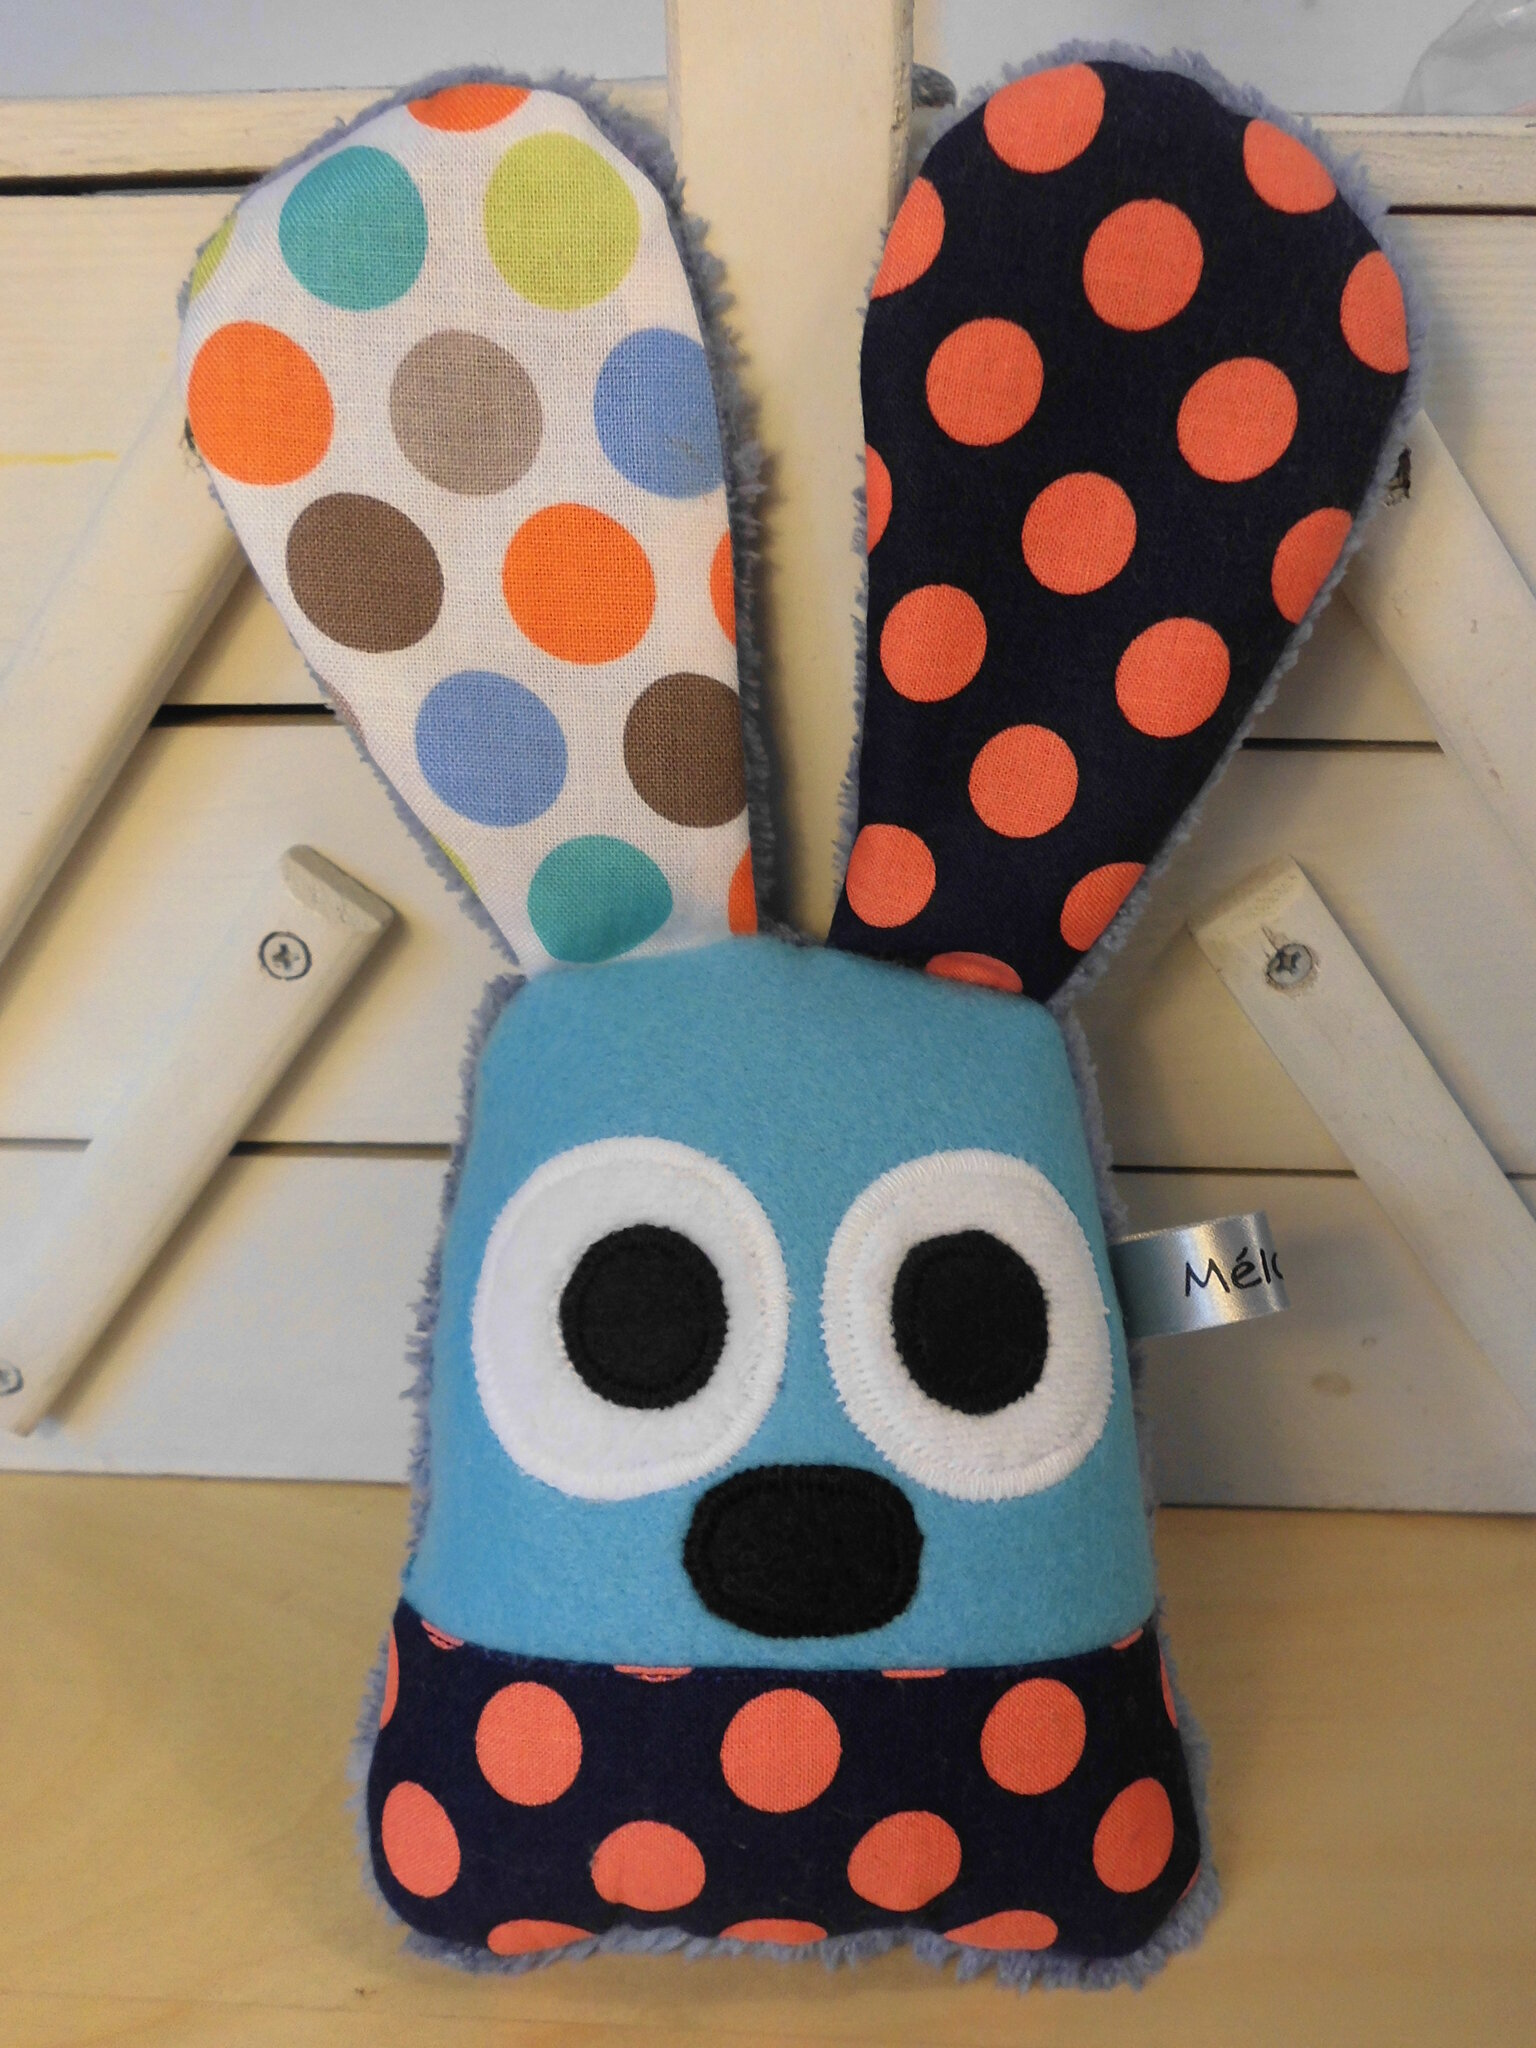 lapin_hochet_bleu_orange